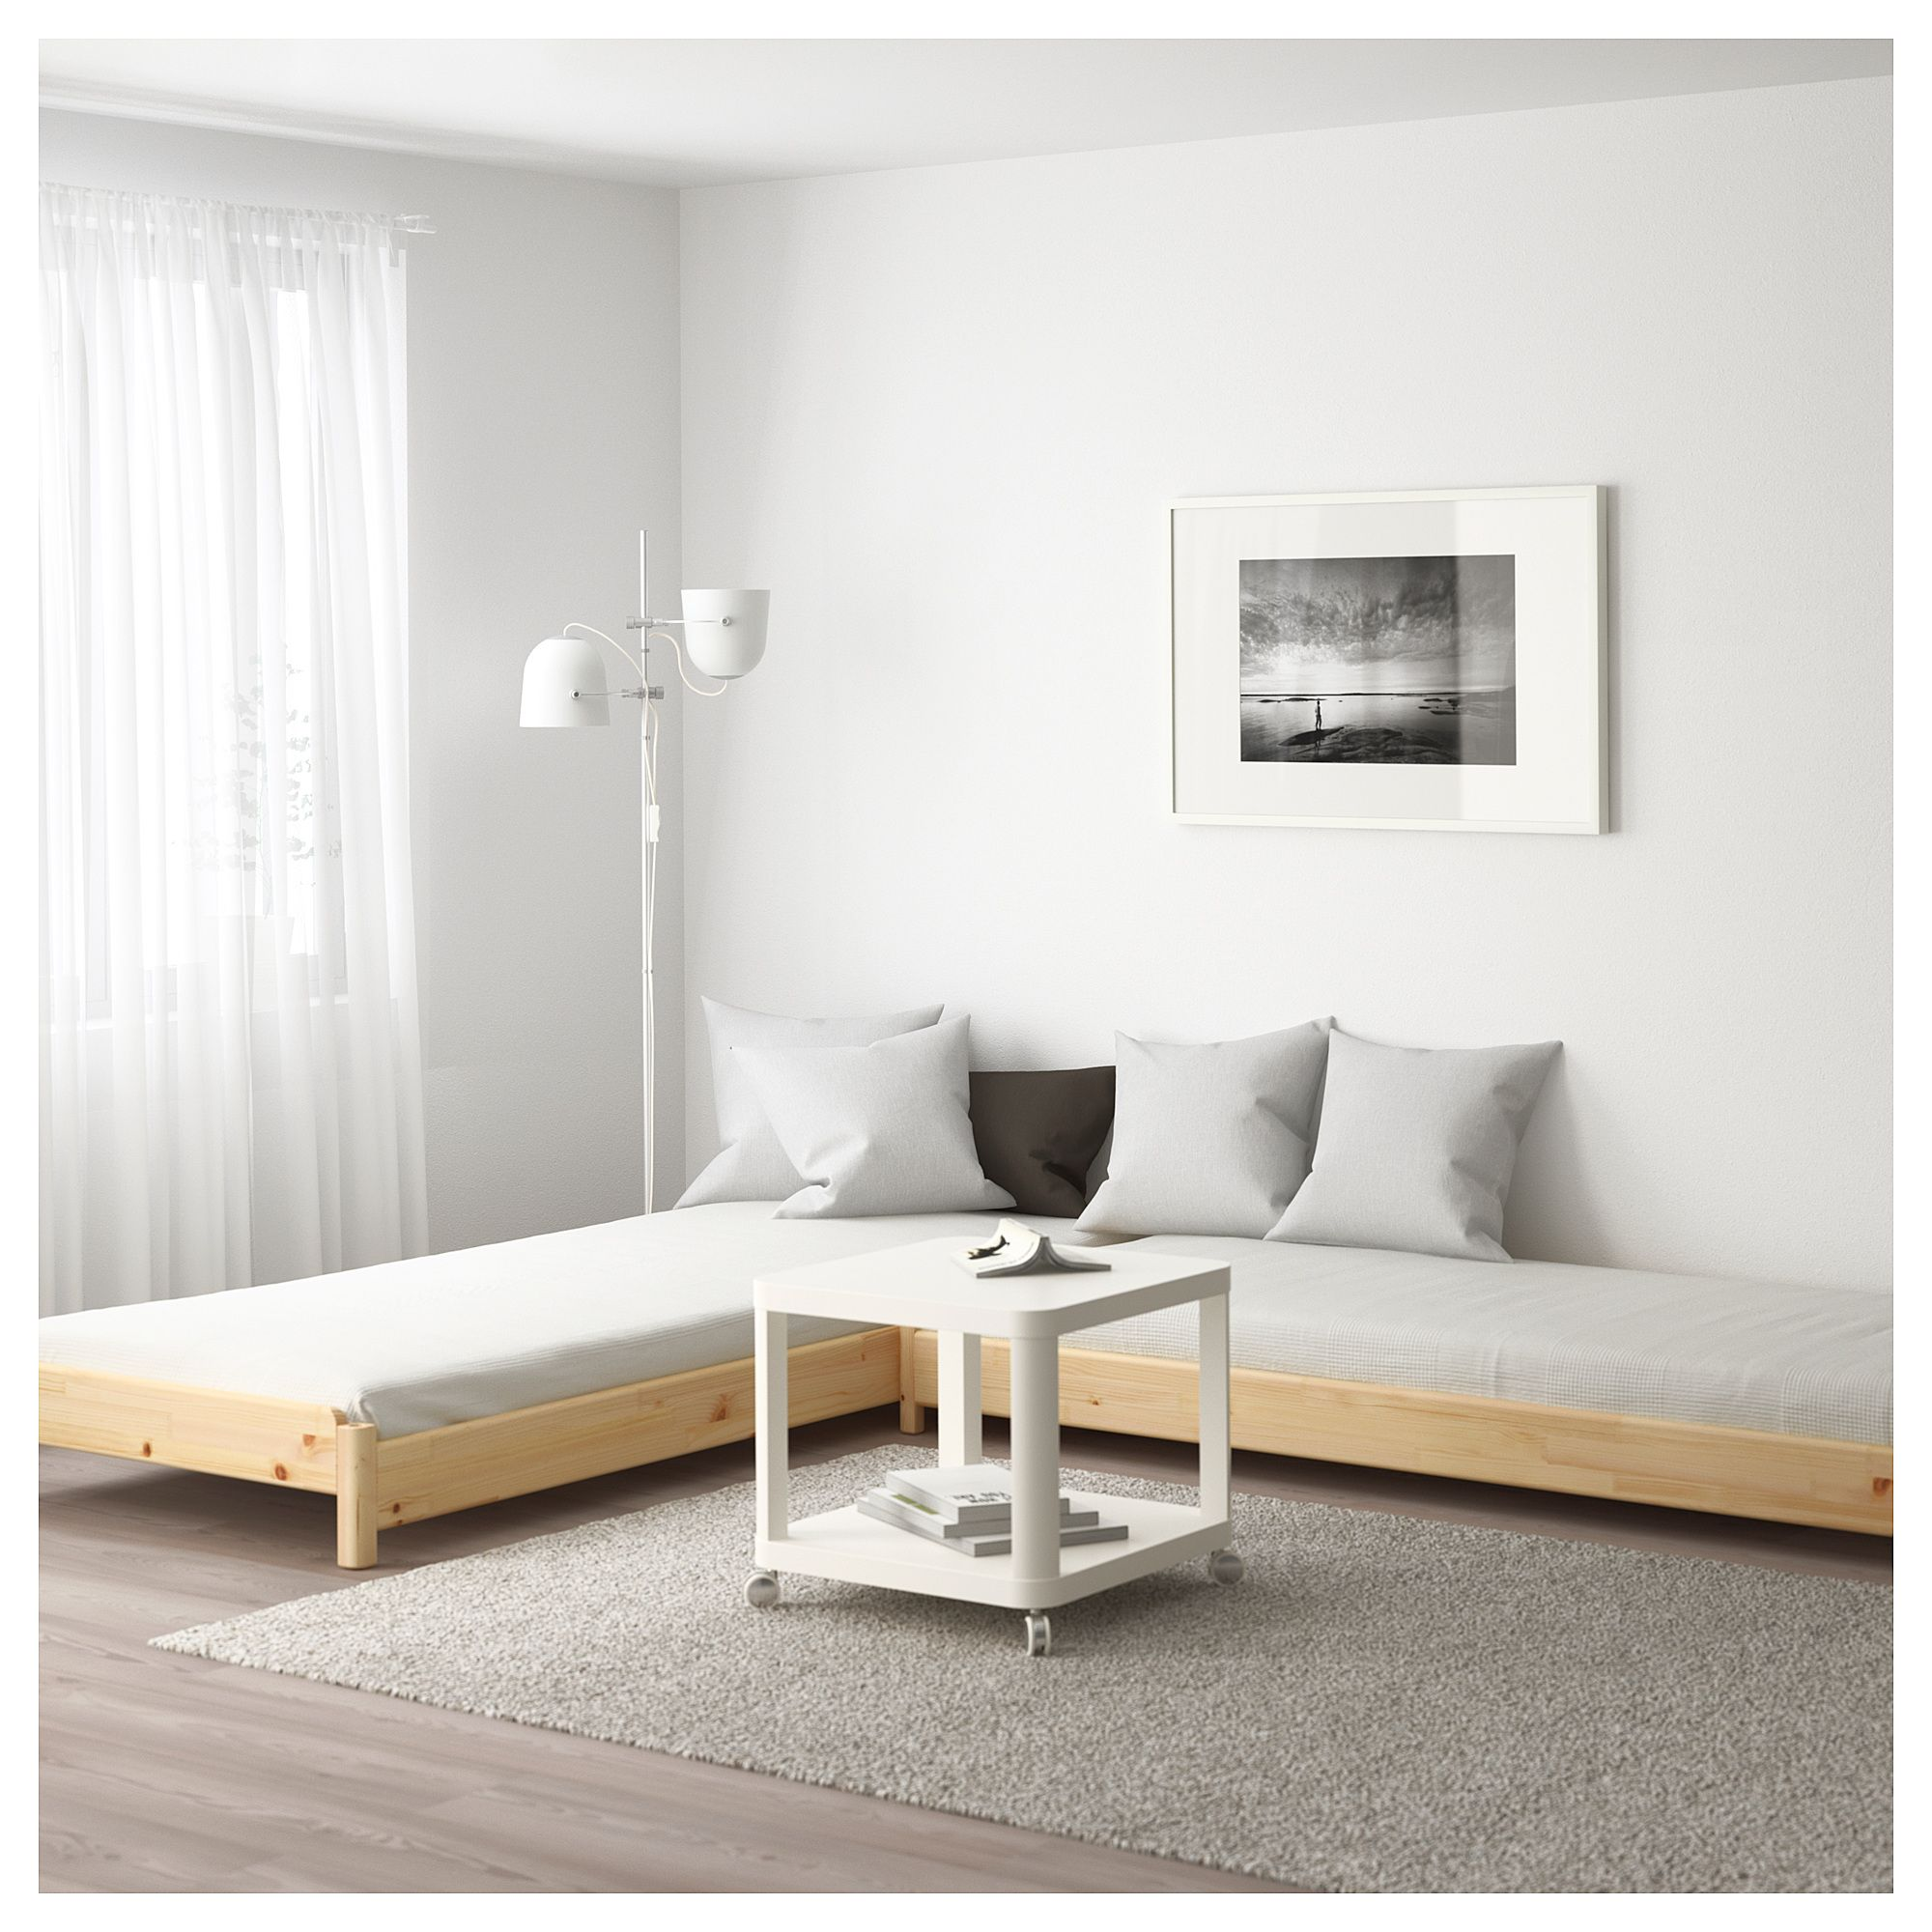 wooden corner sofa with white cushion, wooden floor, grey rug